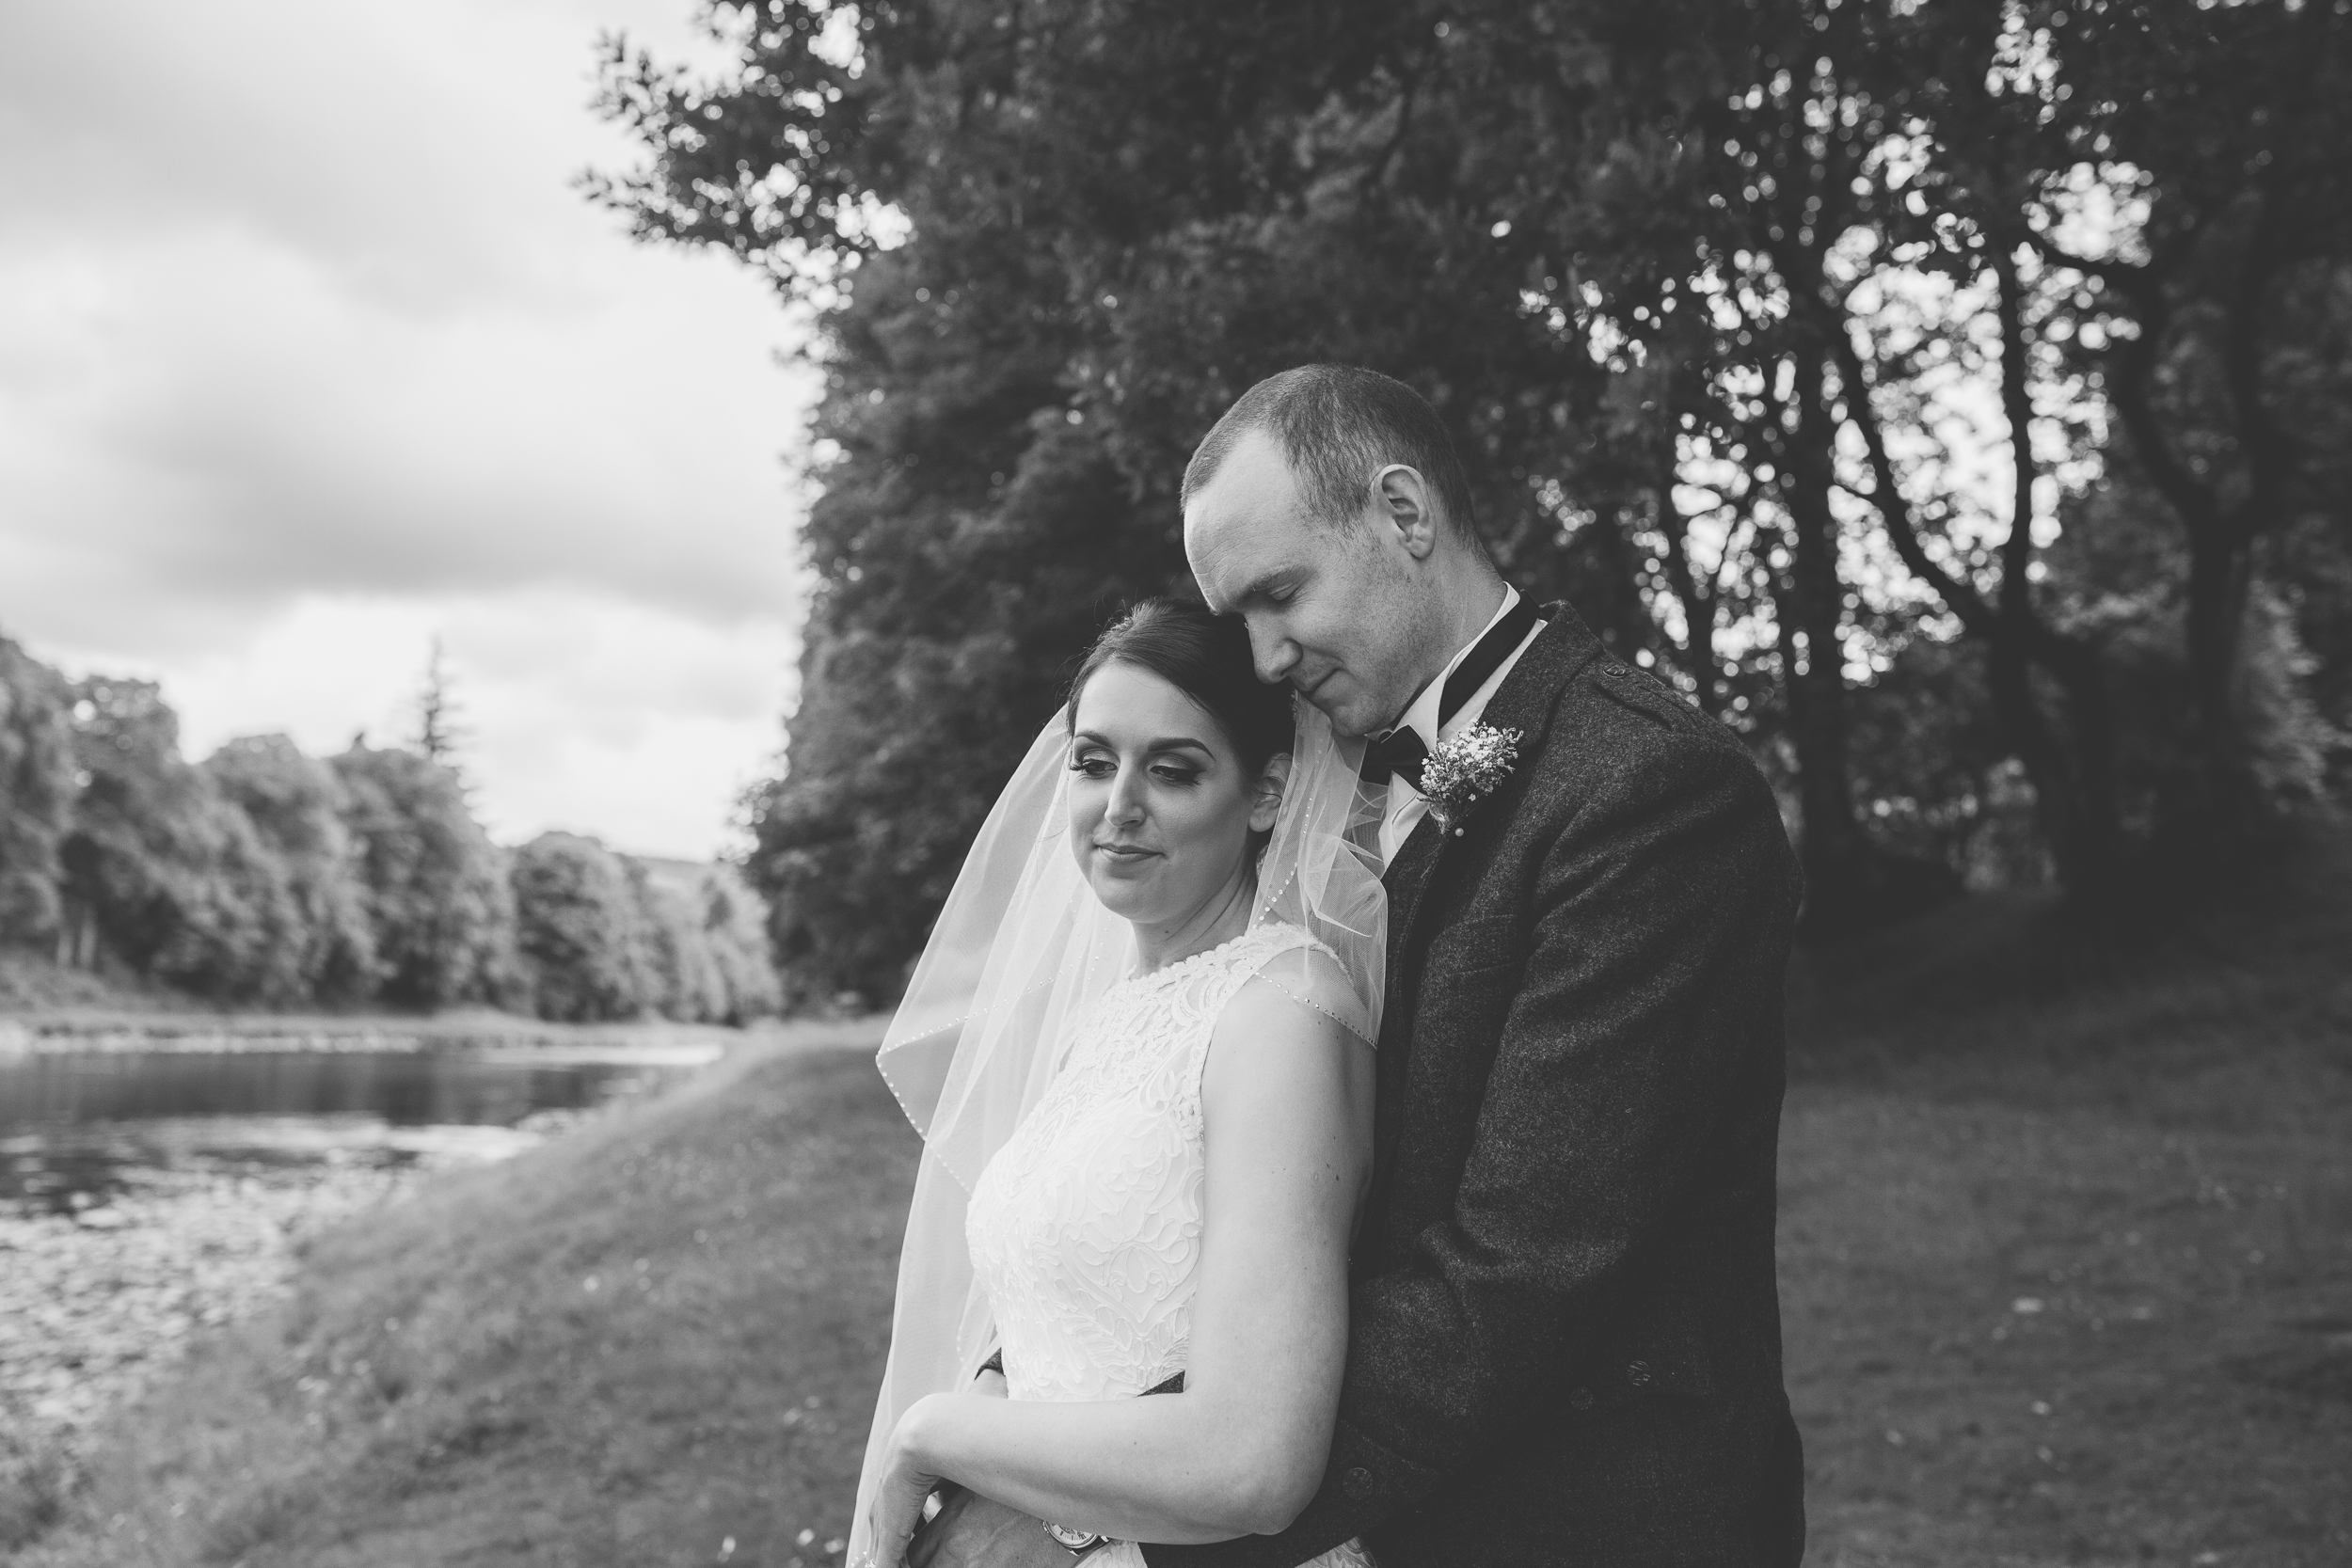 banchorylodgeweddingphotography (15 of 21).jpg